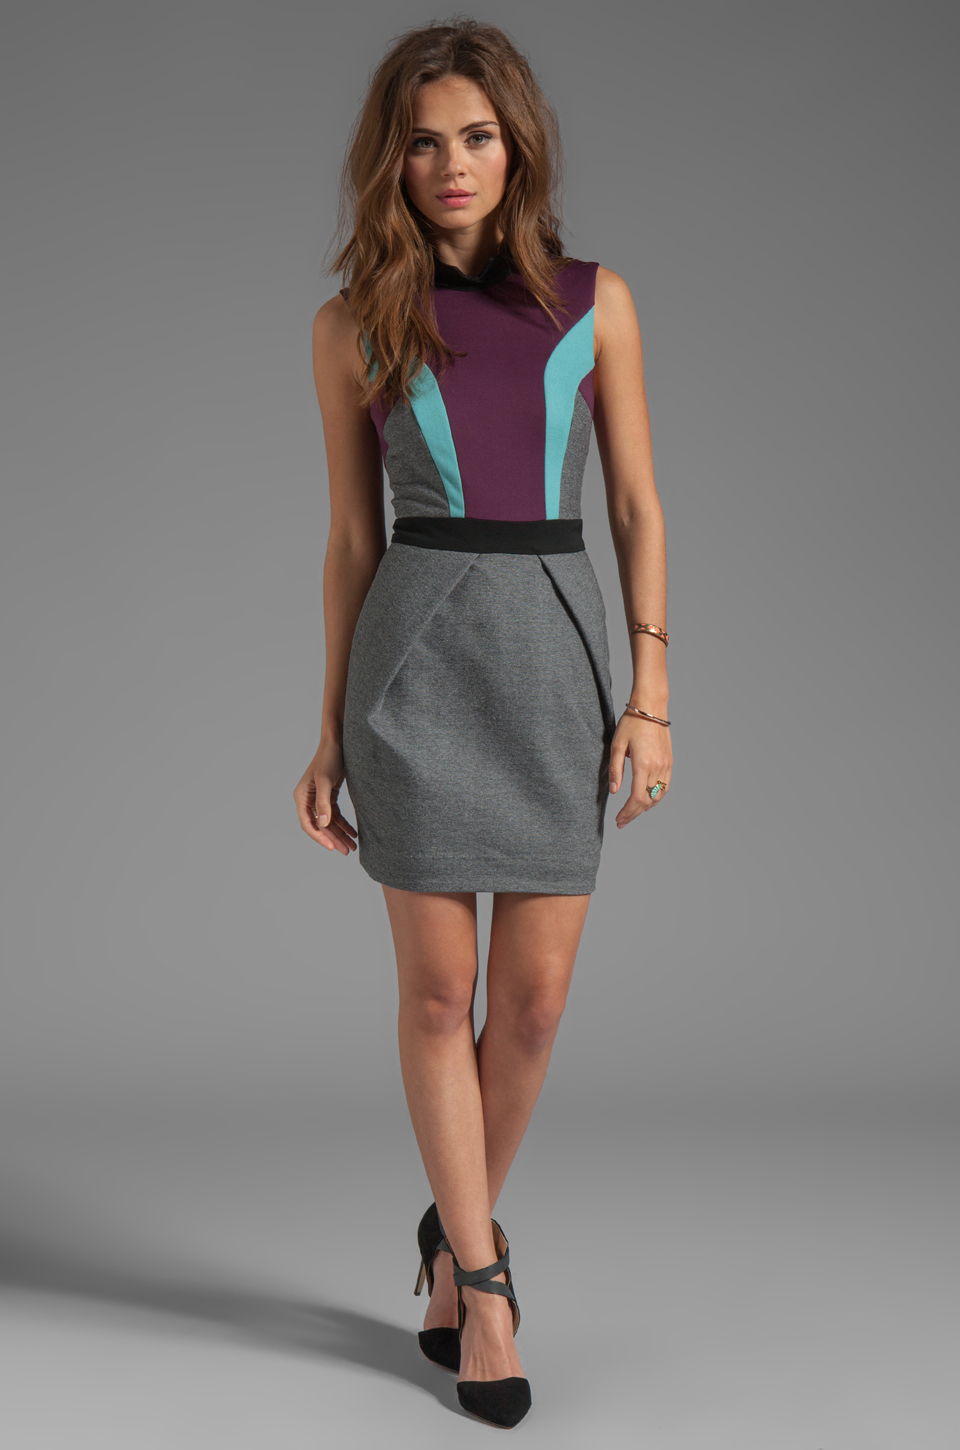 camilla and marc Statesroom Dress in Grey Marle/Maroon/Duck Egg